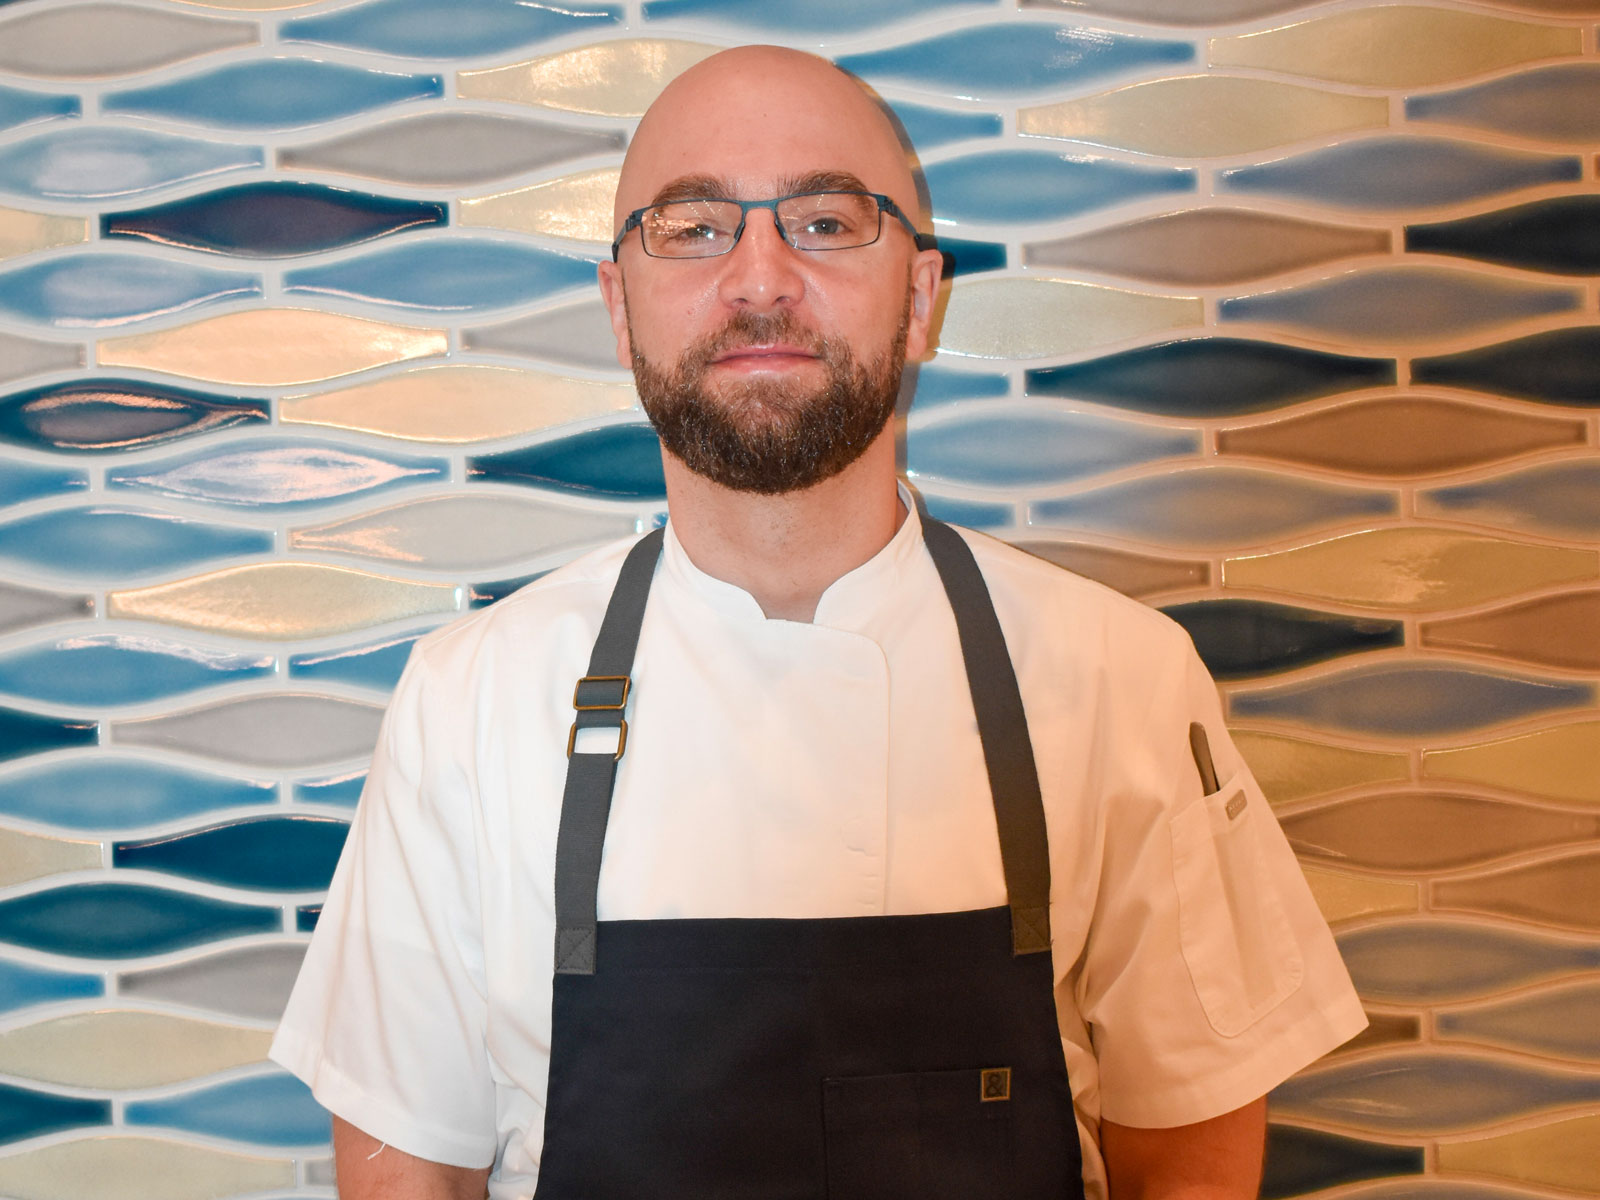 What to Expect at Vernick Fish, Chef Greg Vernick's New Philadelphia Concept